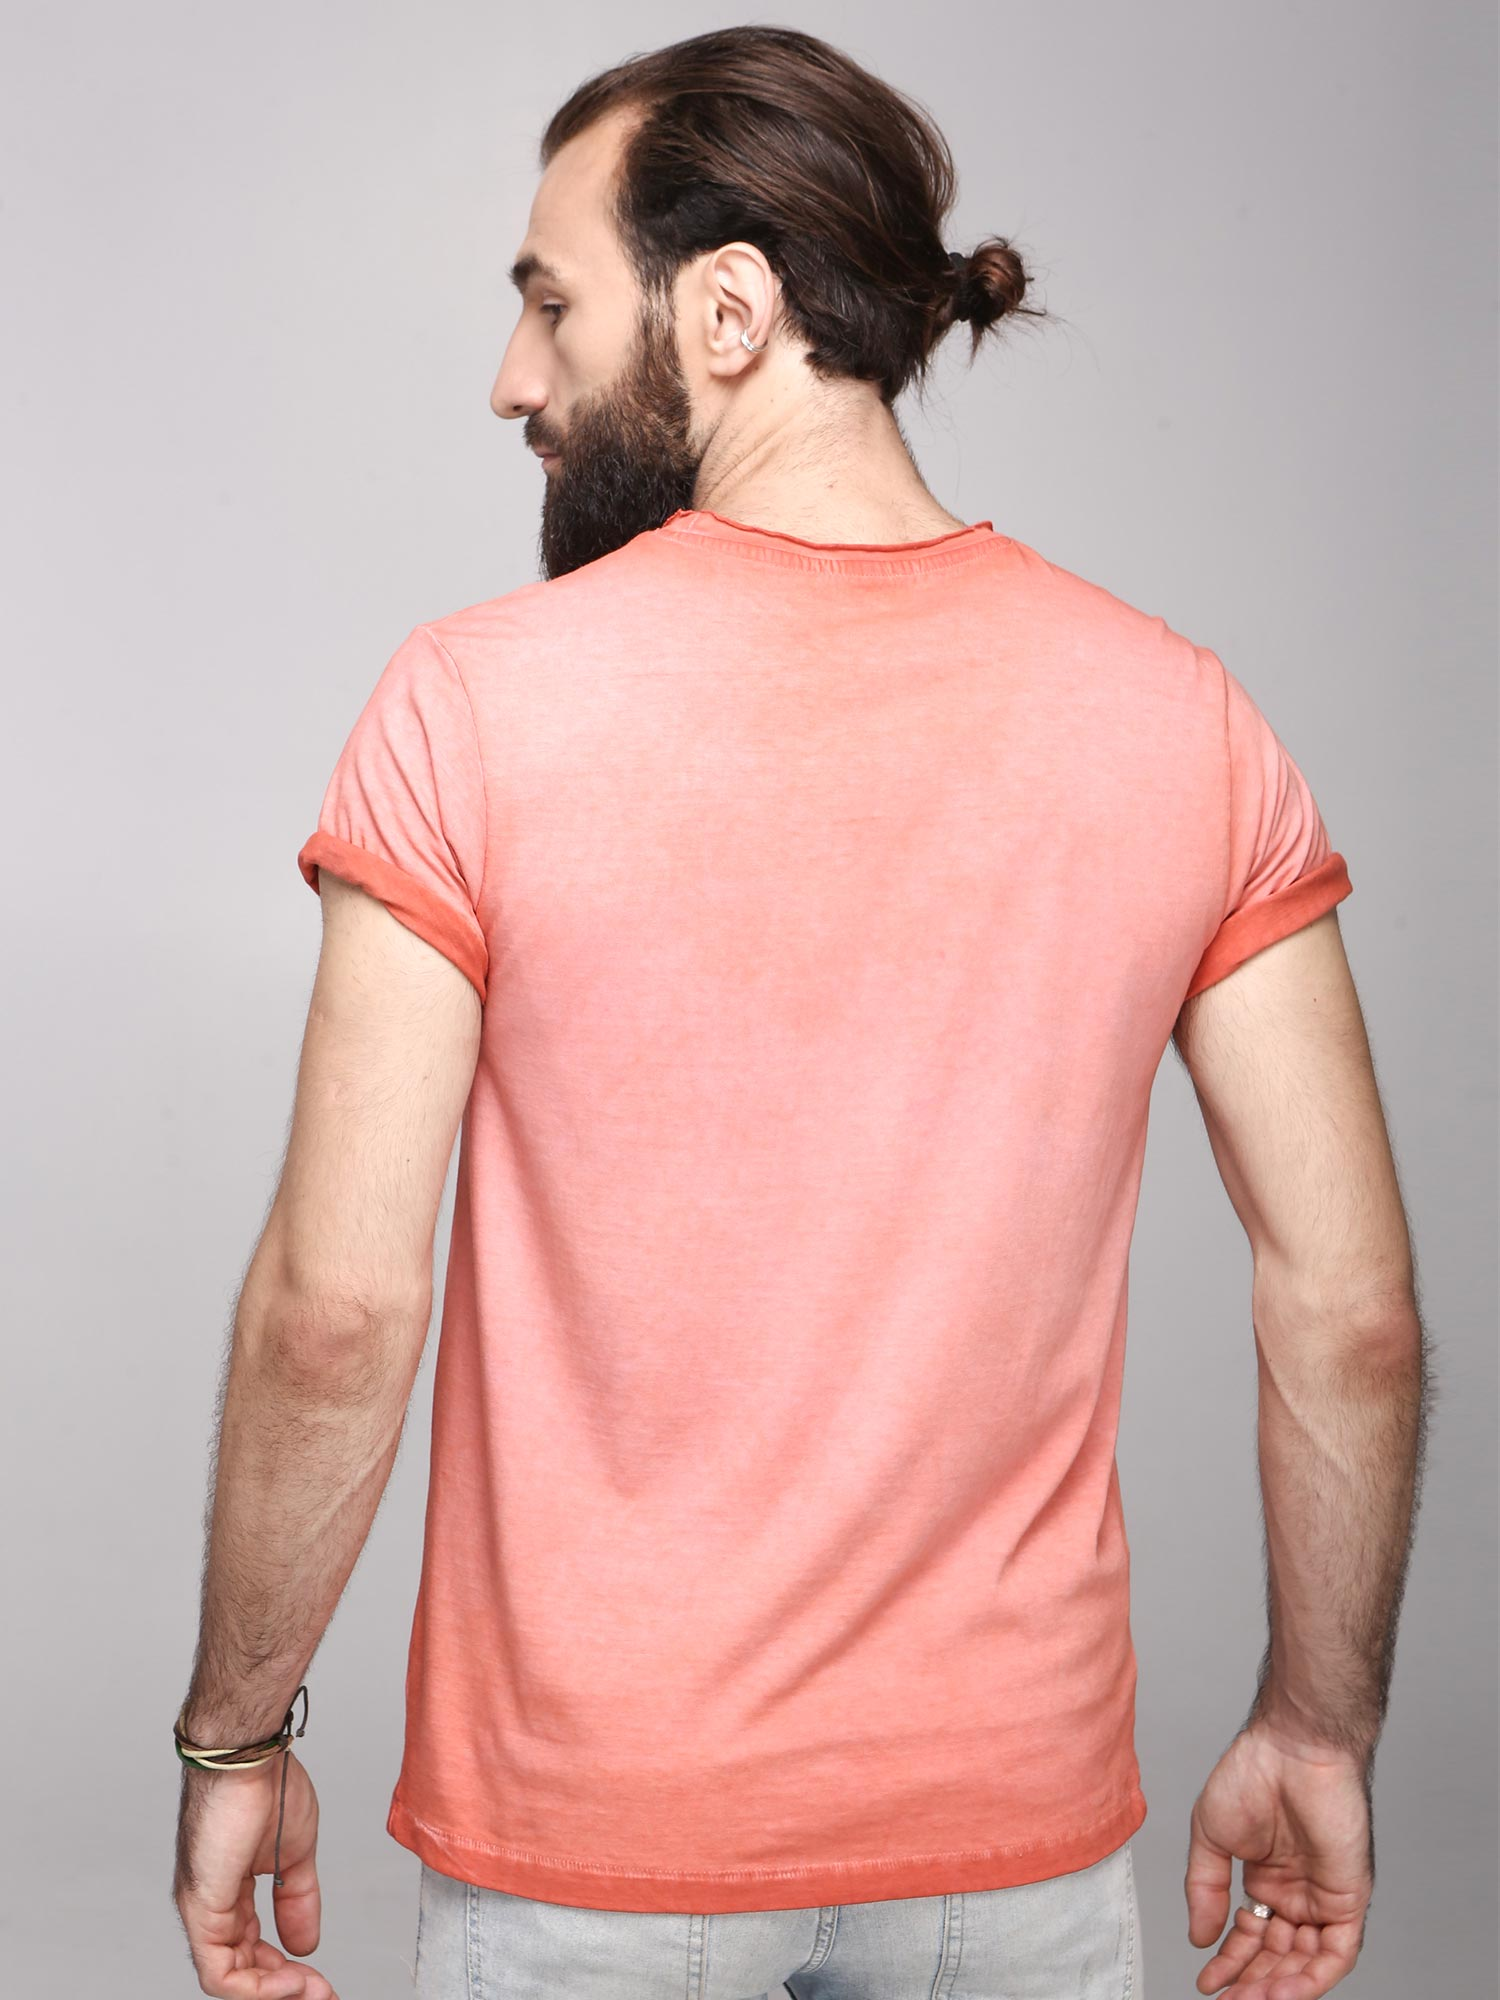 Rock Hooper Men's Half Sleeve Cotton Pink Round Neck  T-Shirt